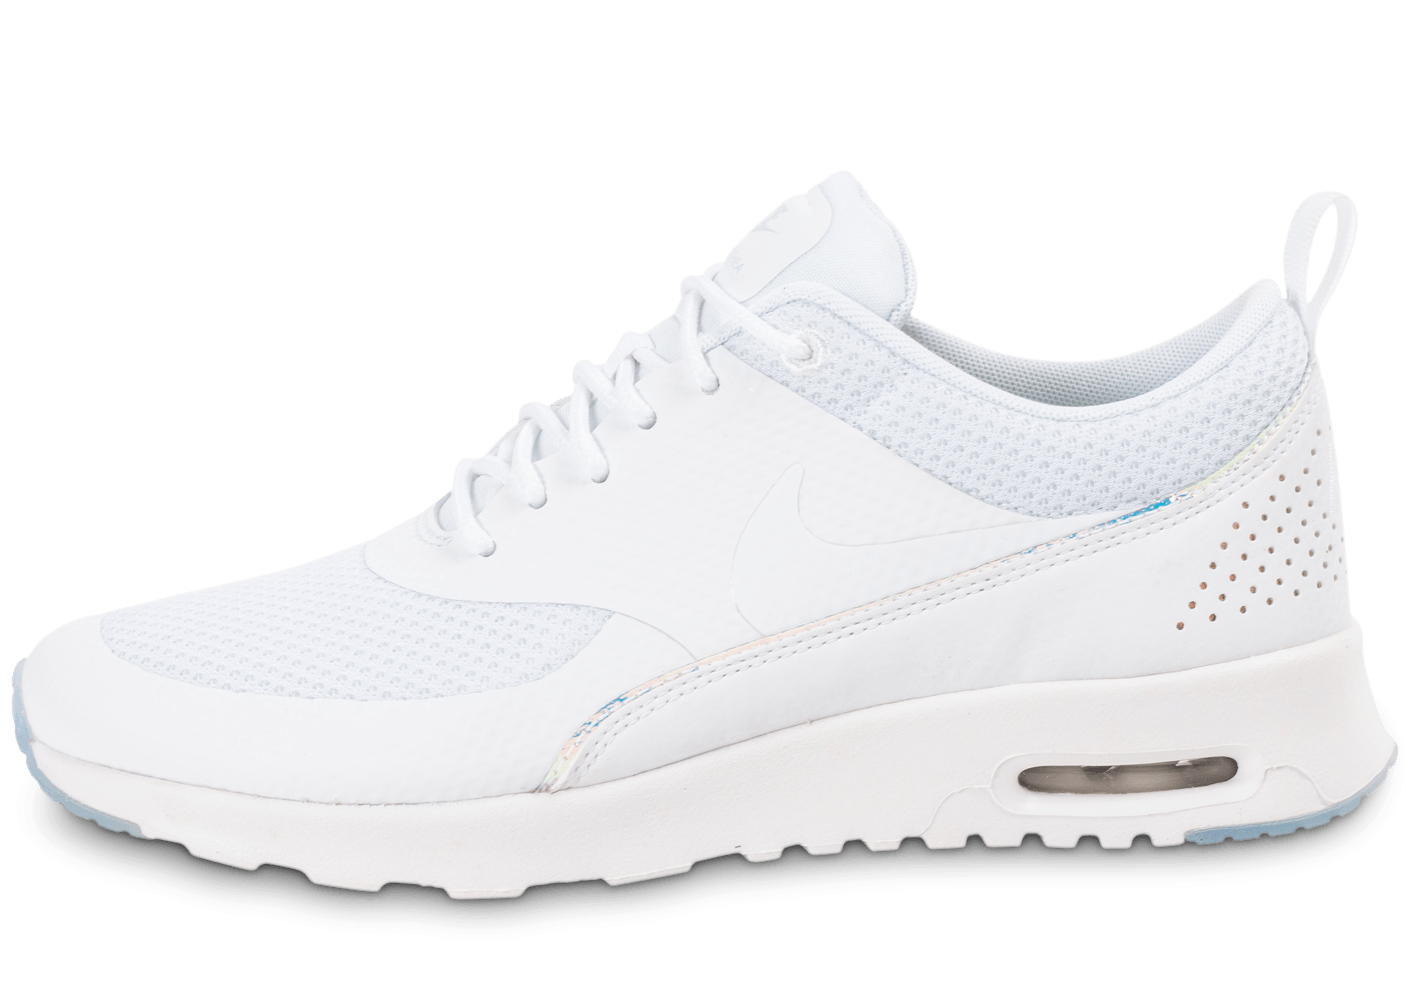 nike thea blanche femme,Nike Air Max Thea blanche et or ...